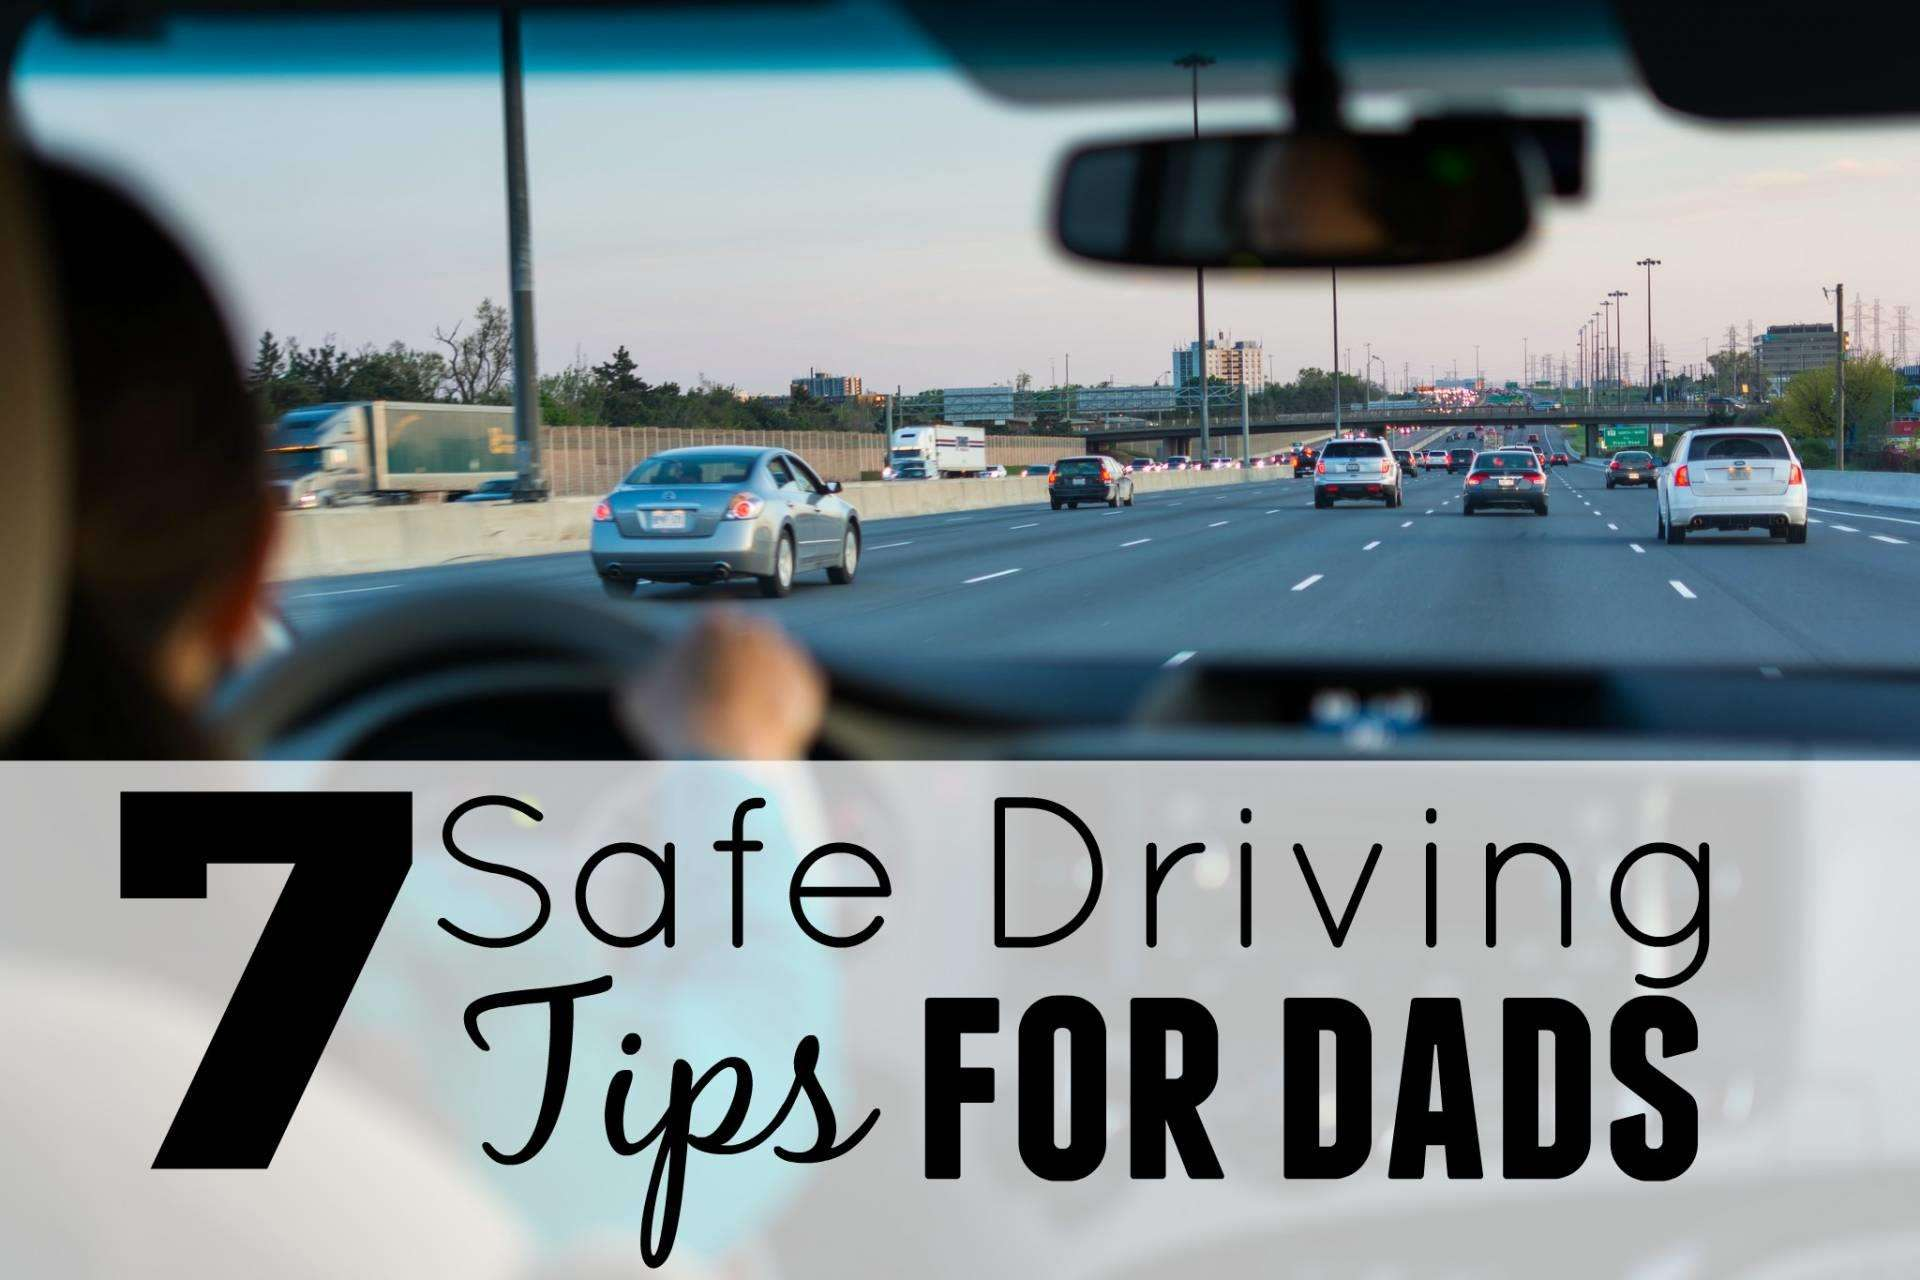 5 Safe Driving Tips for Dads, safe driving tips ft%, new-dad%